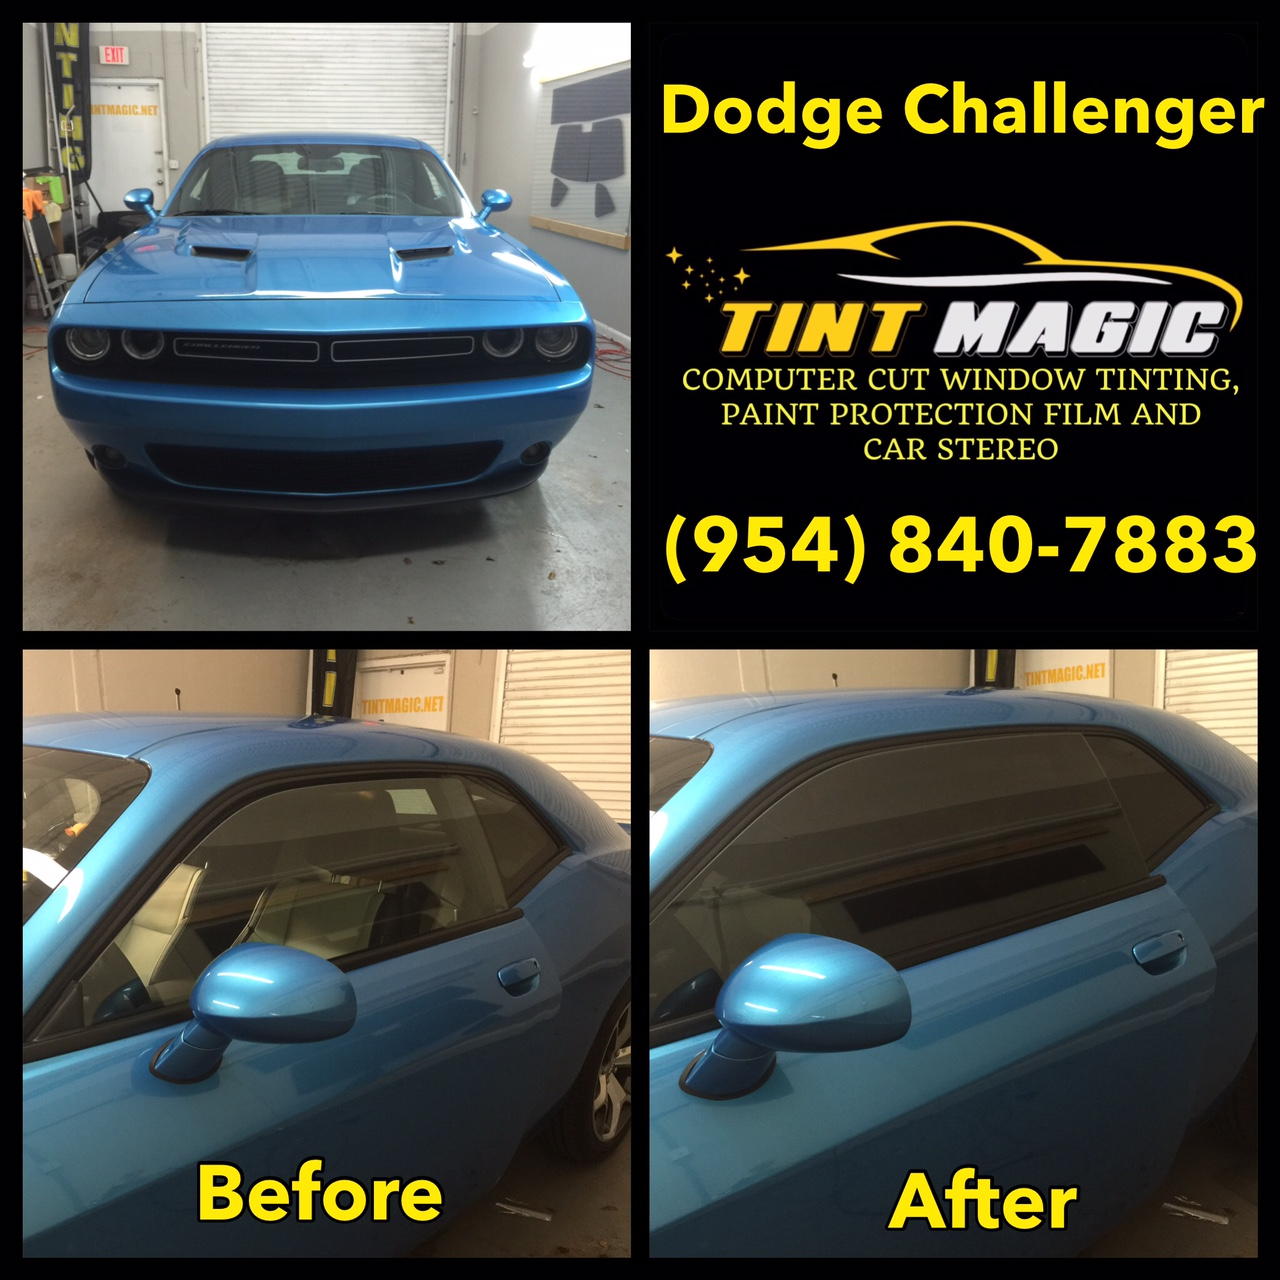 Dodge Challenger at Tint Magic Window Tinting